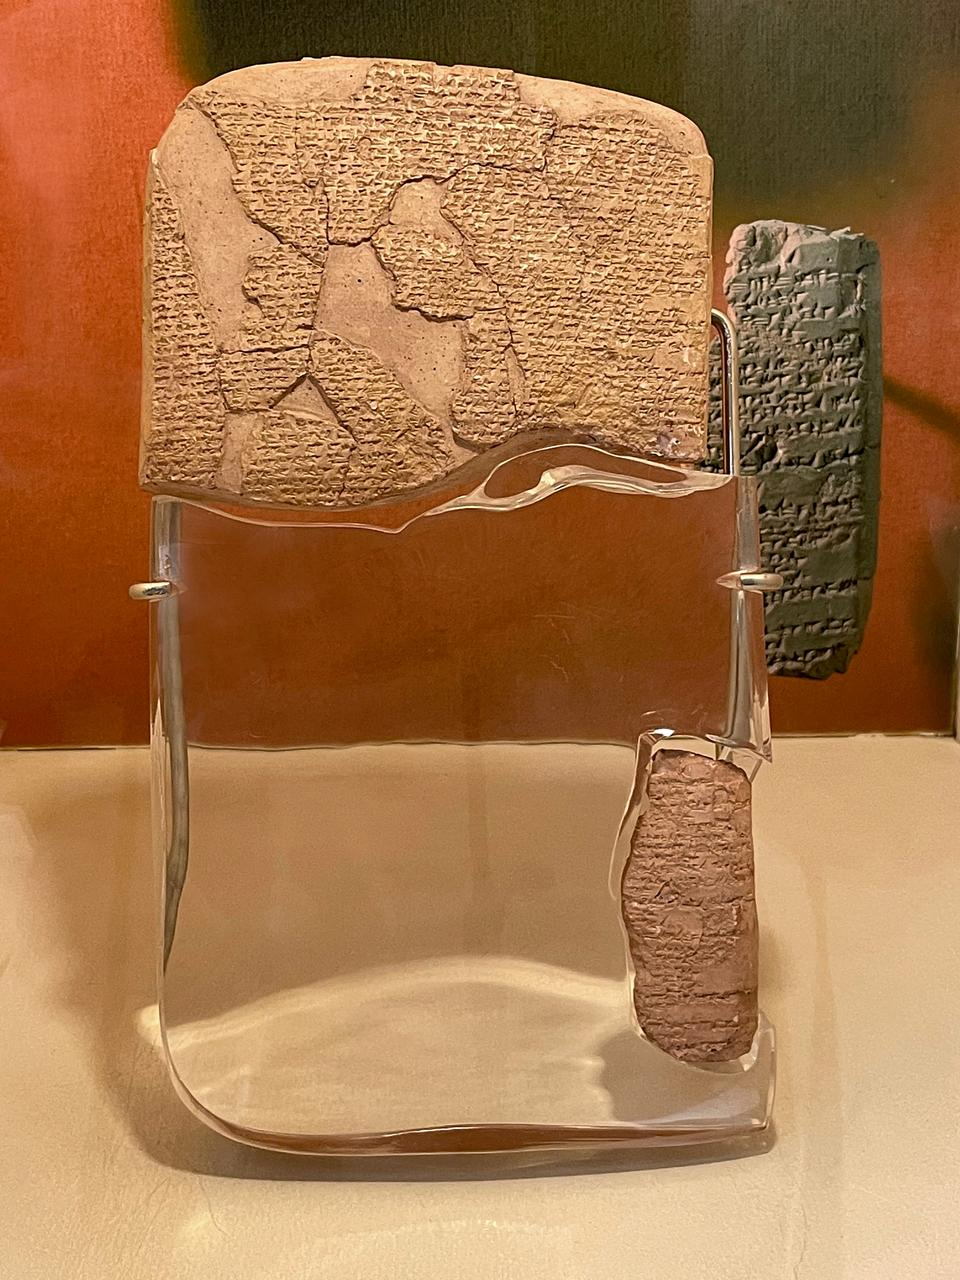 The oldest written treaty between two nations, Hittites and Egyptians, is referred to as the Kadesh Treaty.